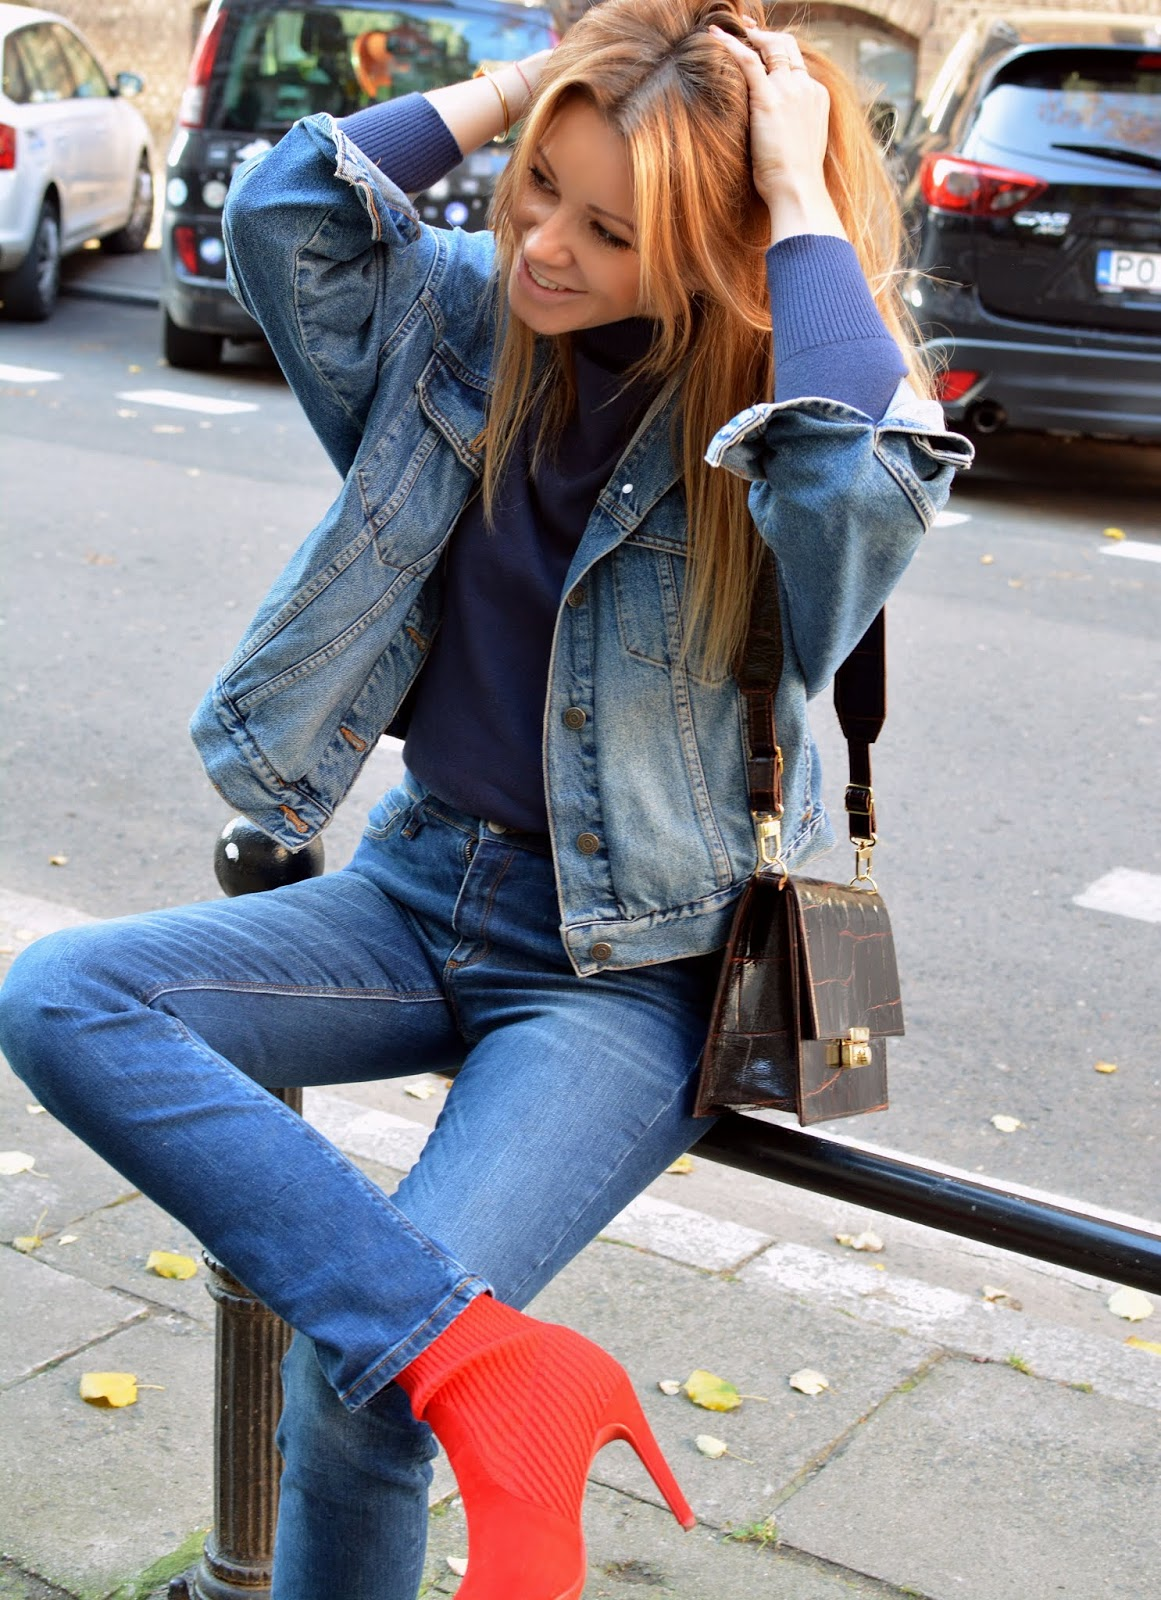 Jeans + Red Boots